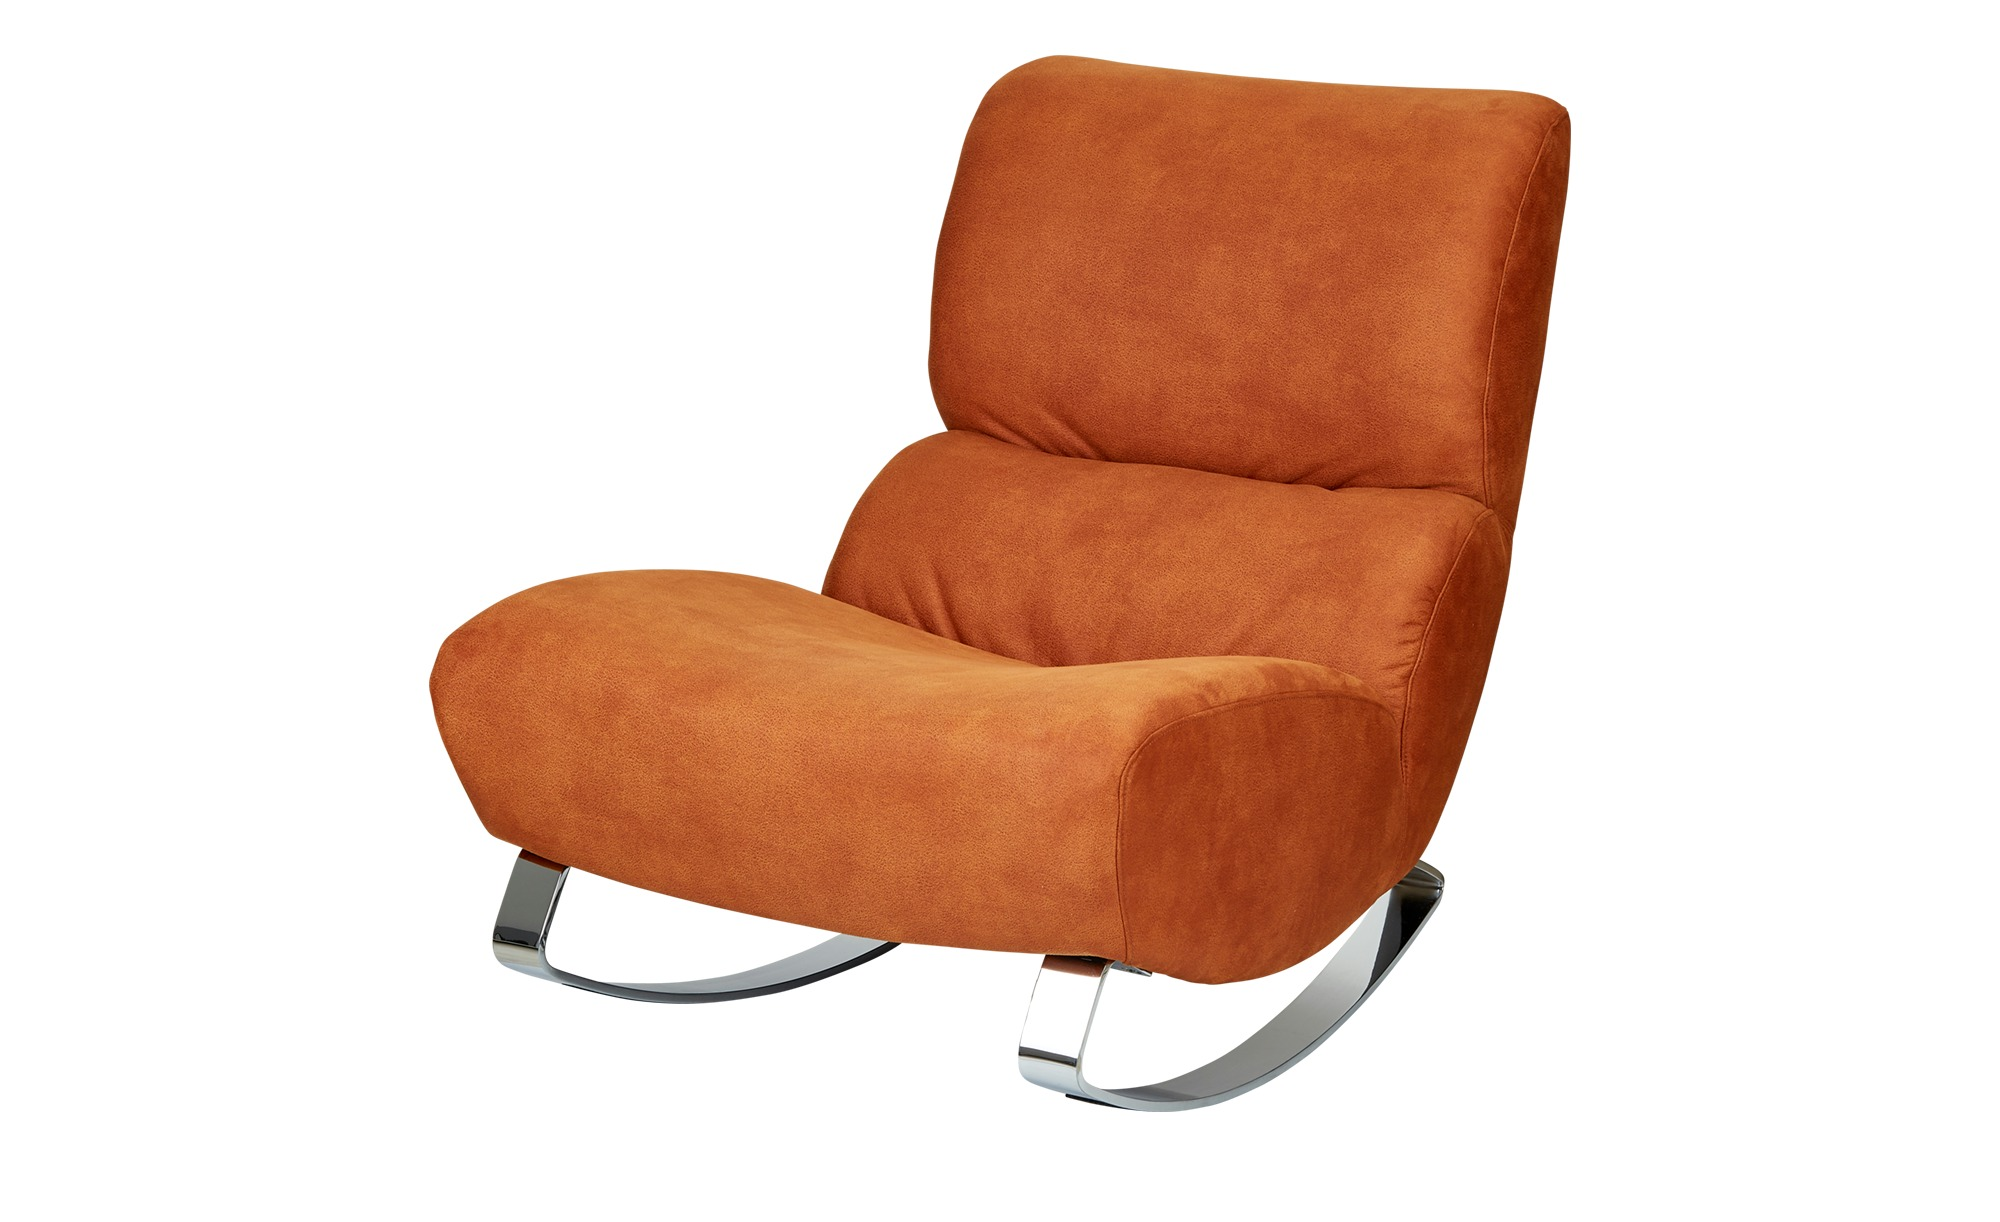 Designer Sessel Orange Design Sessel Orange Stoff Citole Orange Maße Cm B 76 H